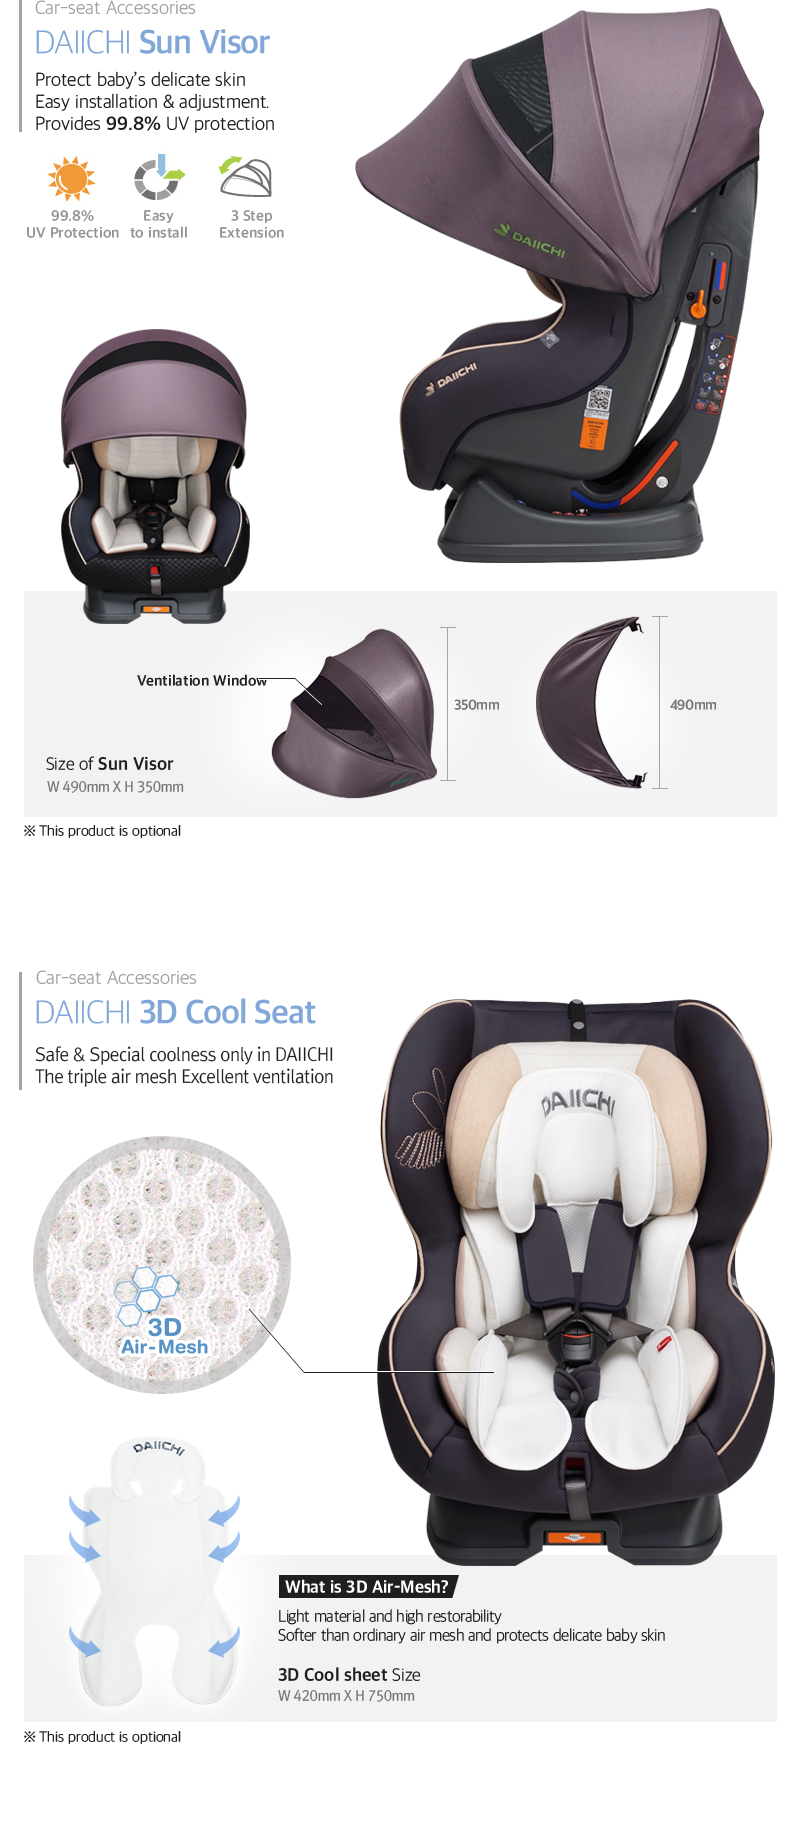 Protect baby's delicate skin, Easy installation & adjustment. Provides 99.8% UV protectionSafe & Special coolness only in DAIICHI,The triple air mesh Excellent ventilation